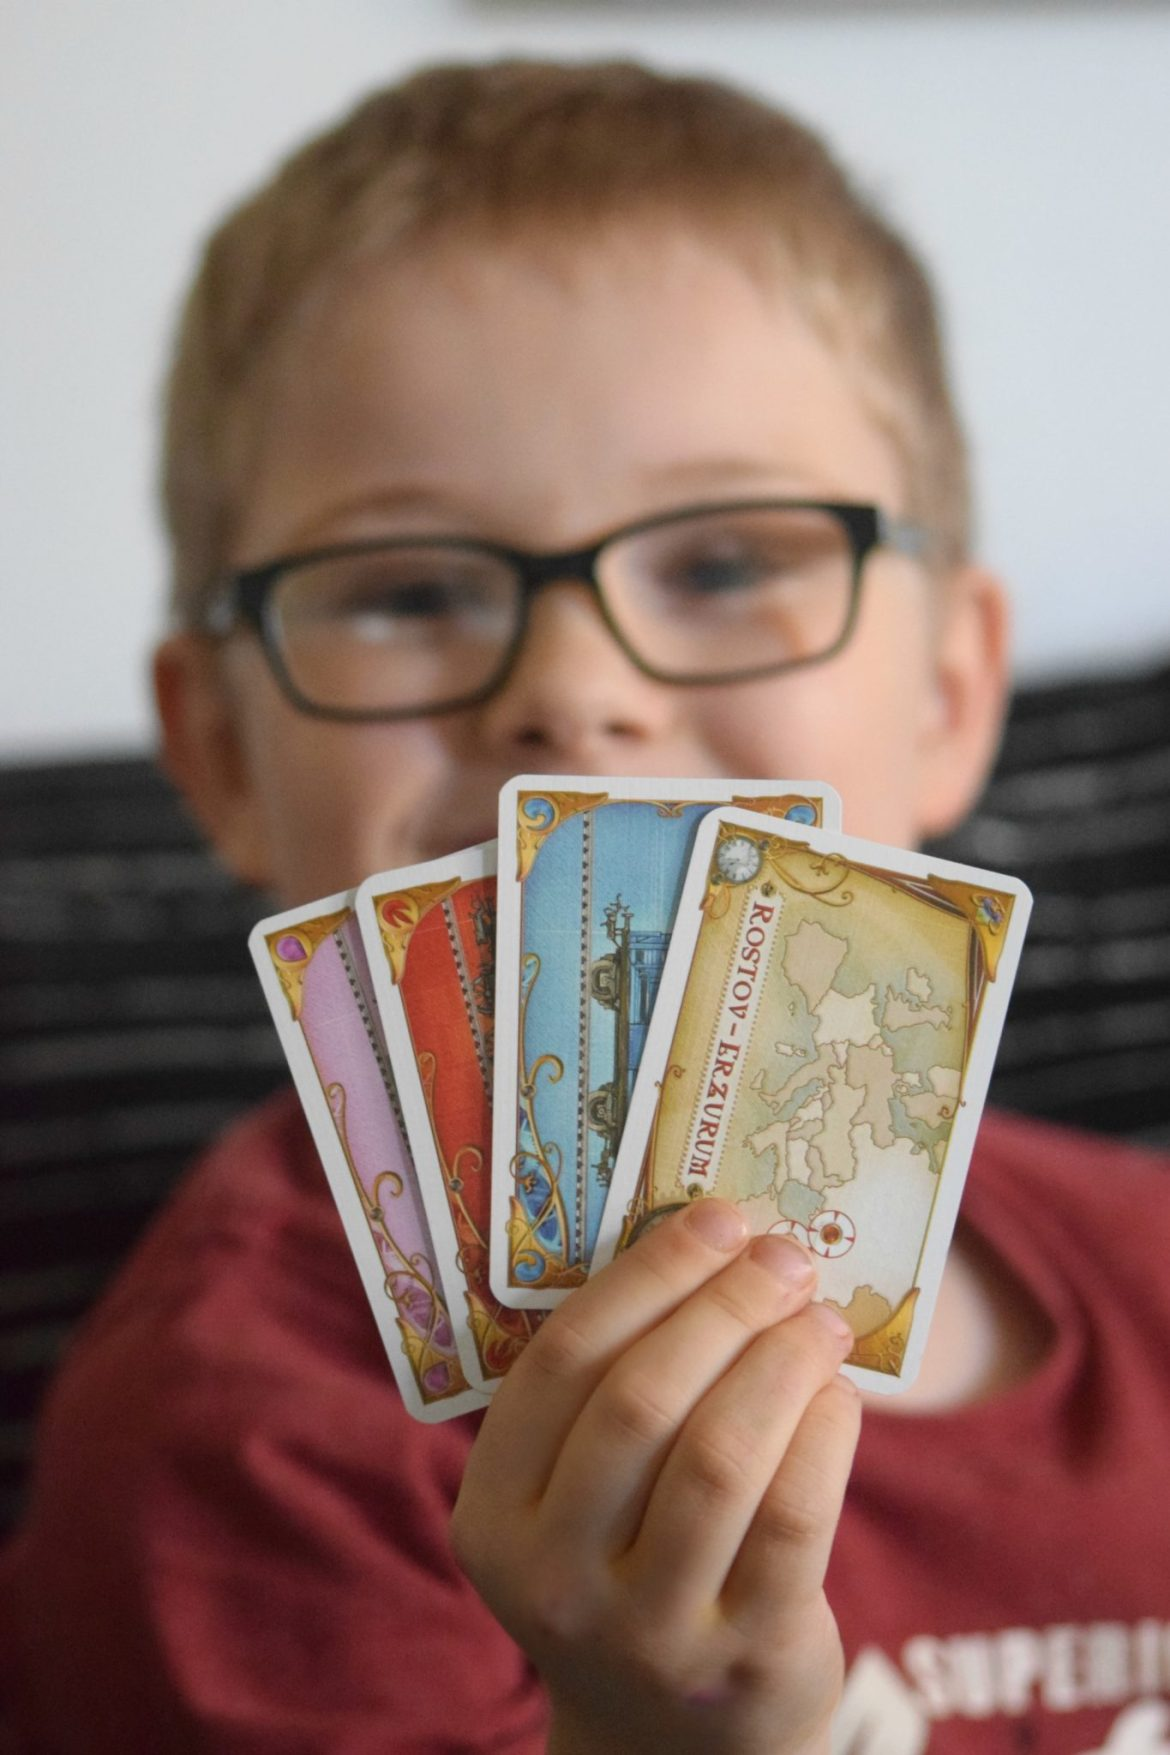 My son holding the playing cards for Ticket to ride Europe board game.